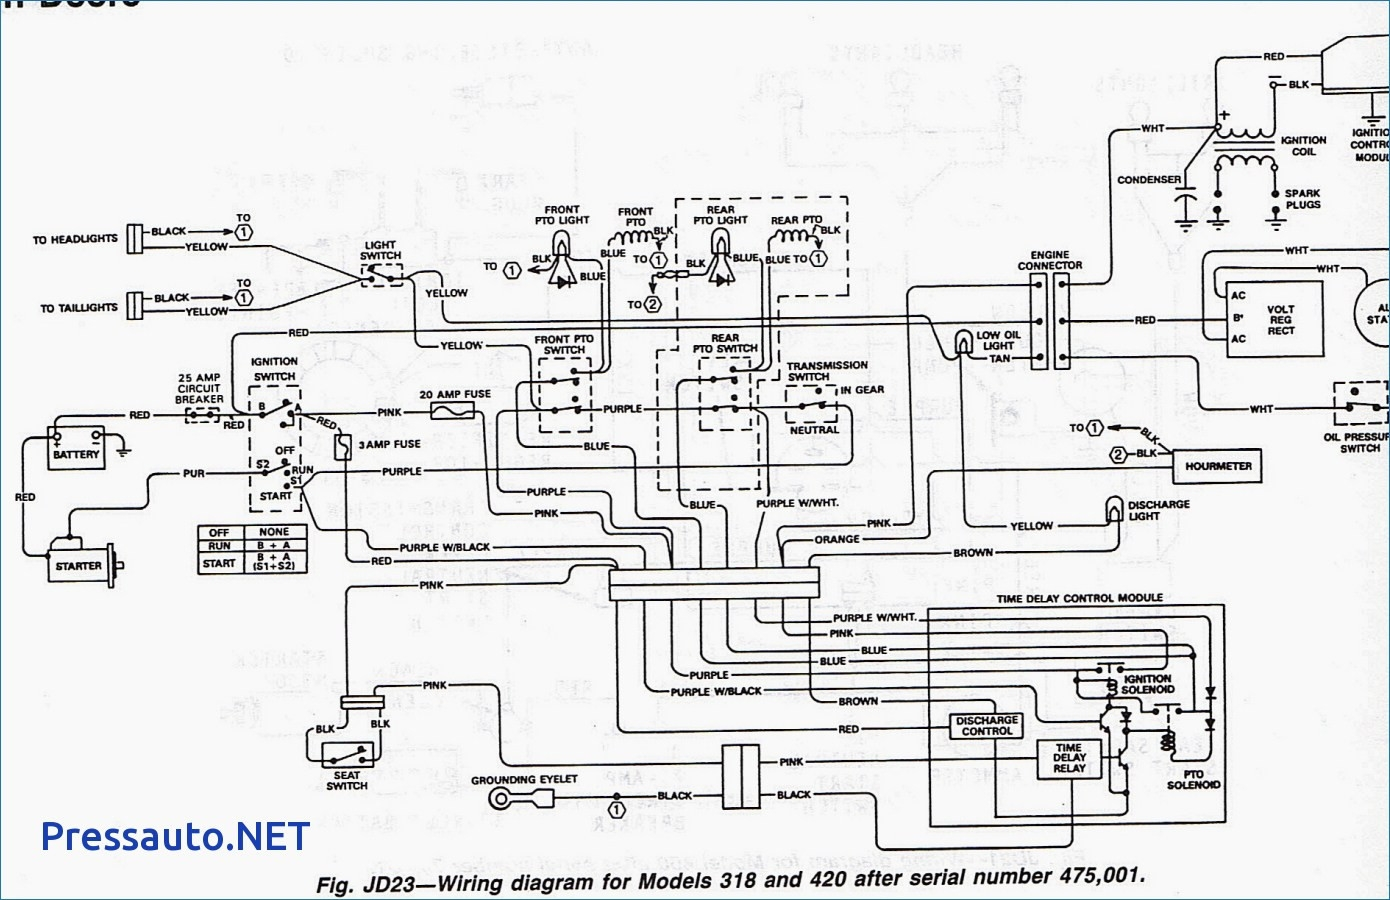 Wiring Diagram For John Deere F525 Mower Free Download ... on